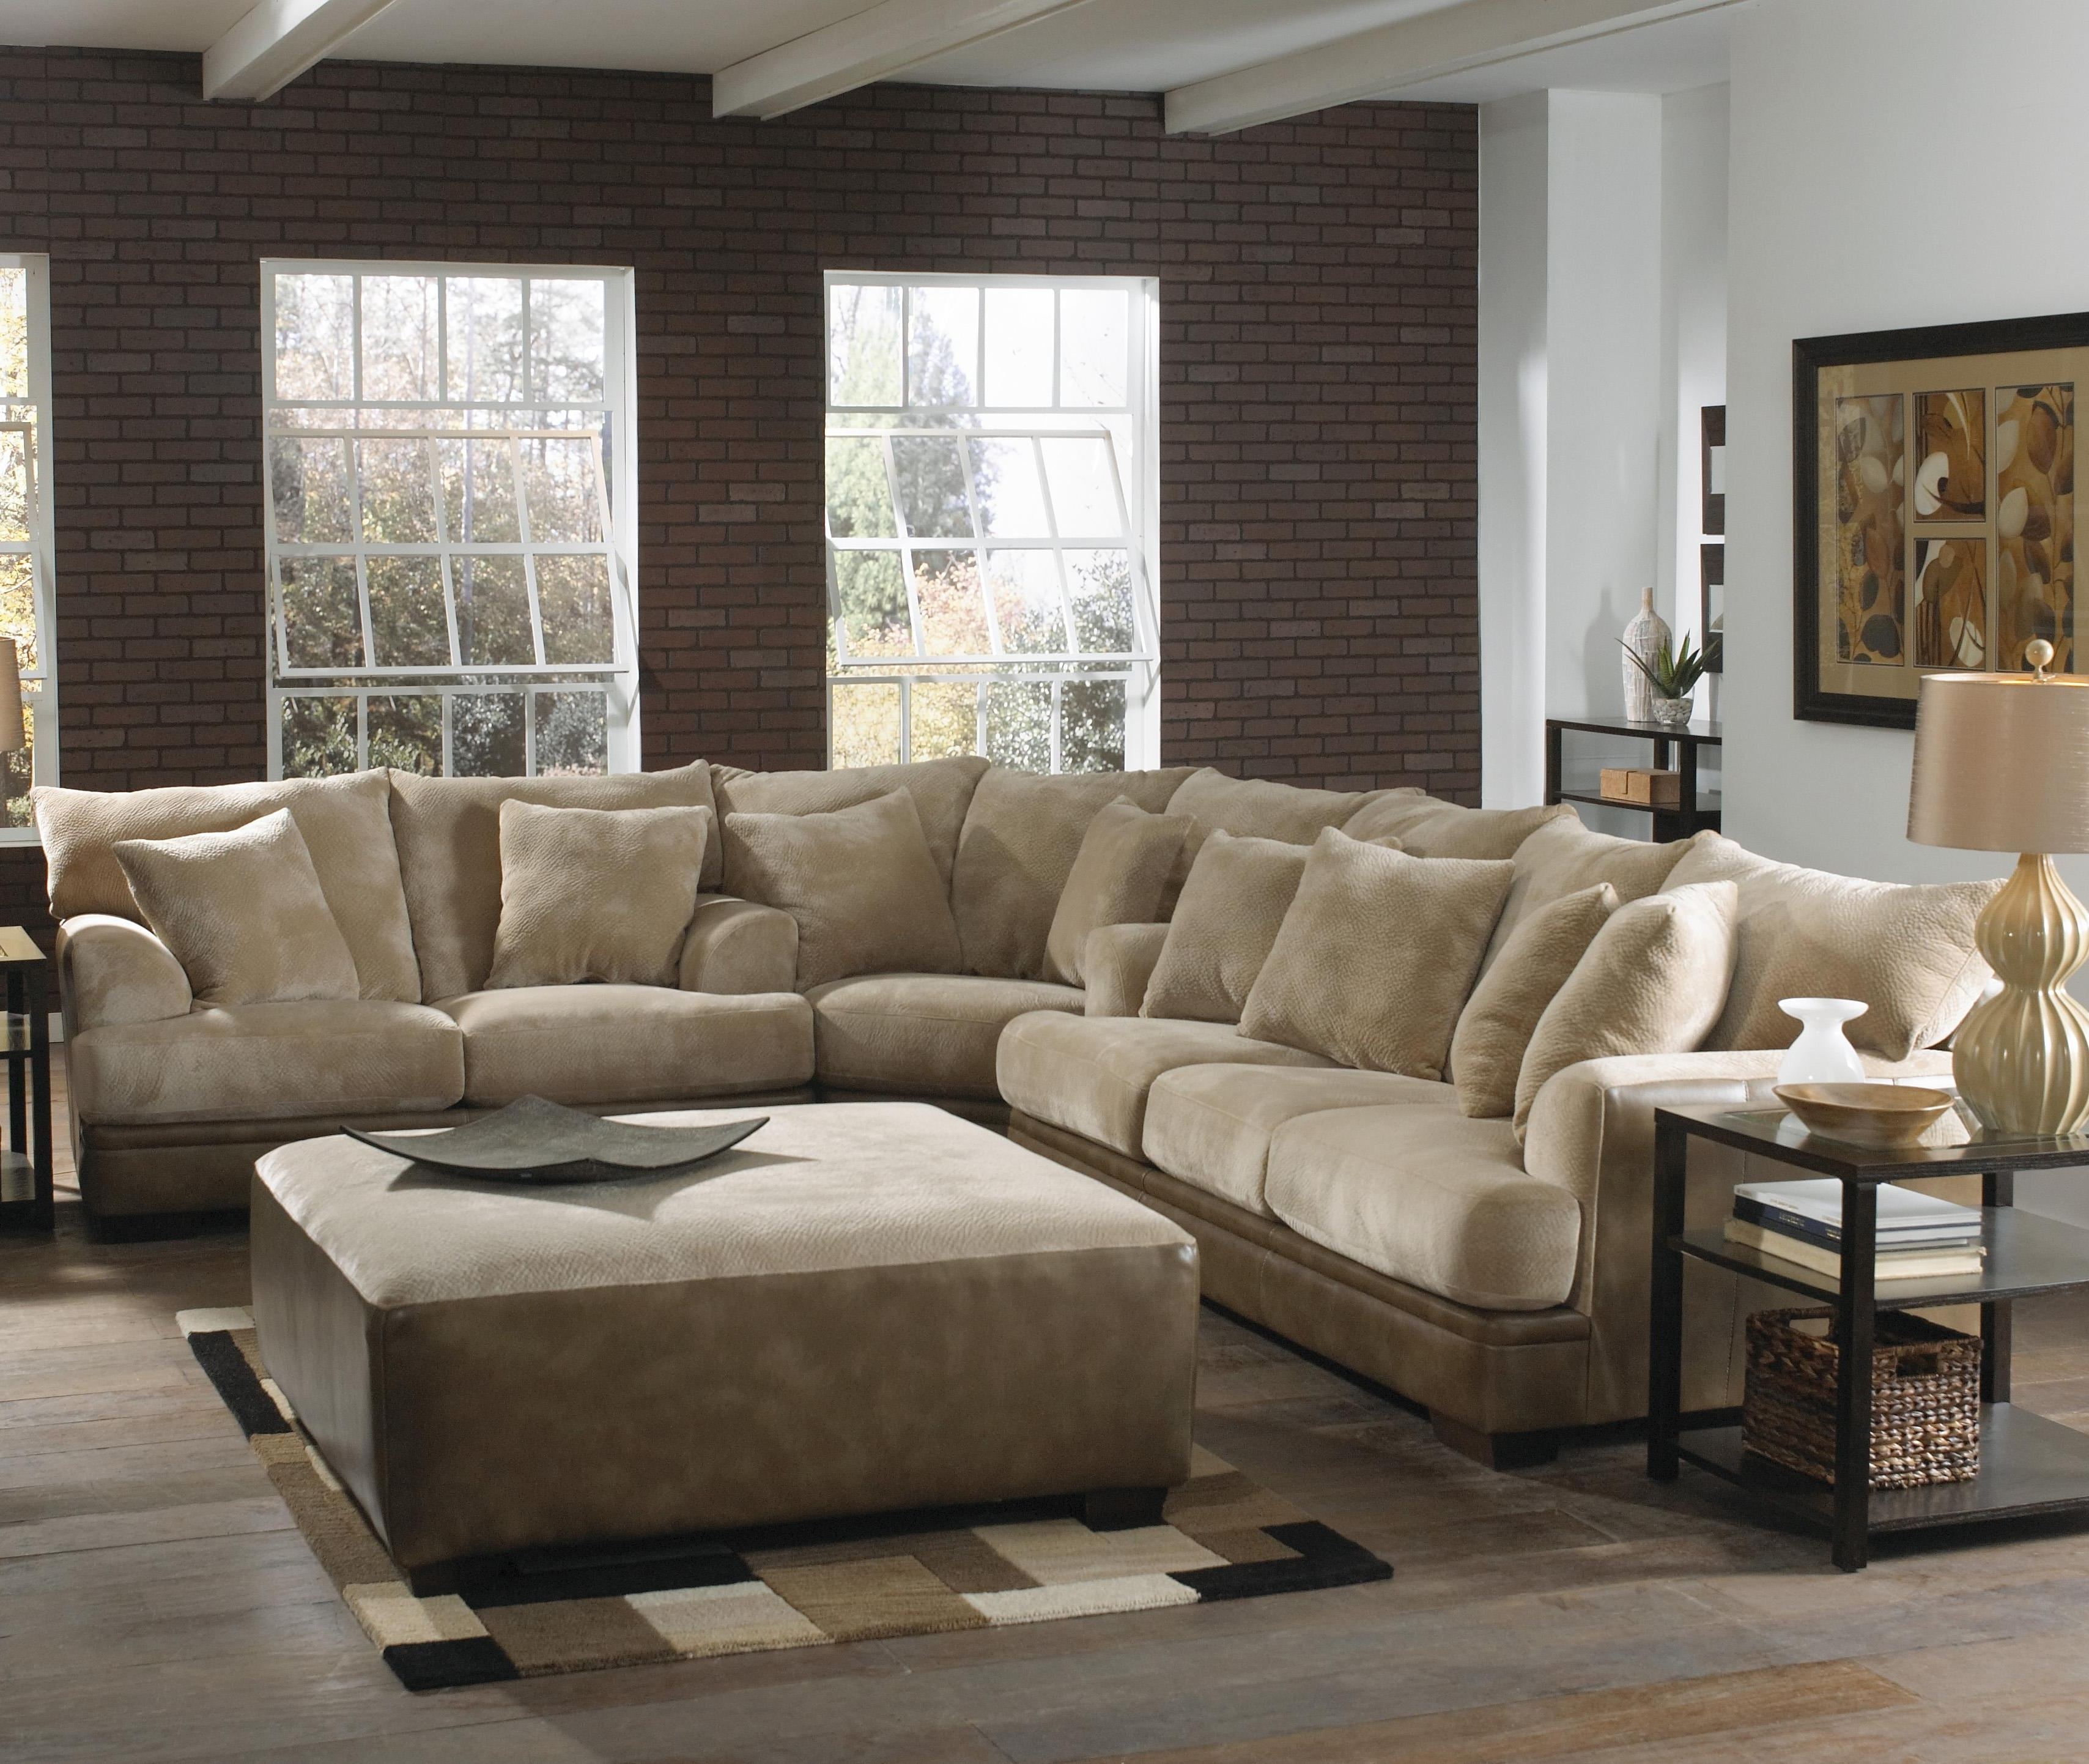 Most Recent 7 Seat Sectional Sofa – Cleanupflorida Throughout Sectional Sofas At Brick (View 6 of 20)